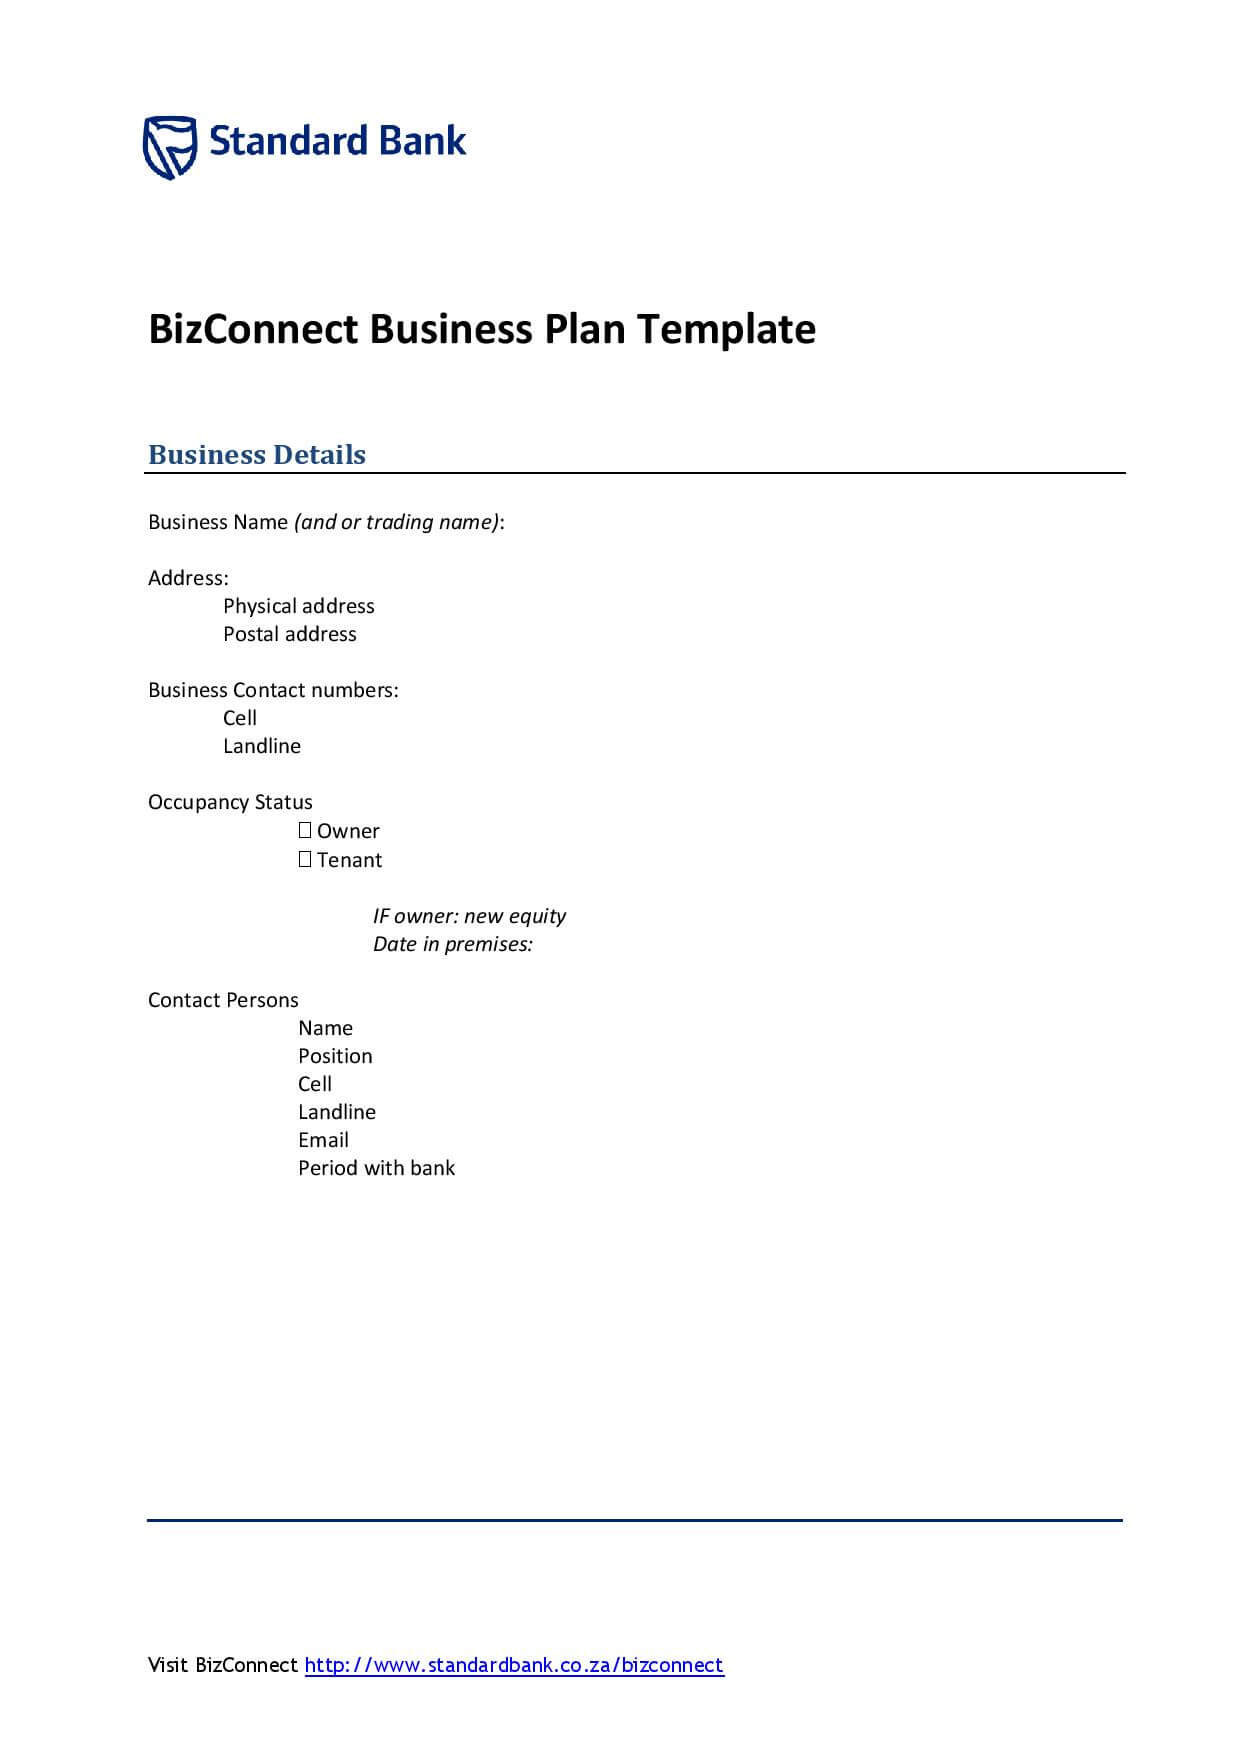 Download a free business plan template formfactory search friedricerecipe Choice Image